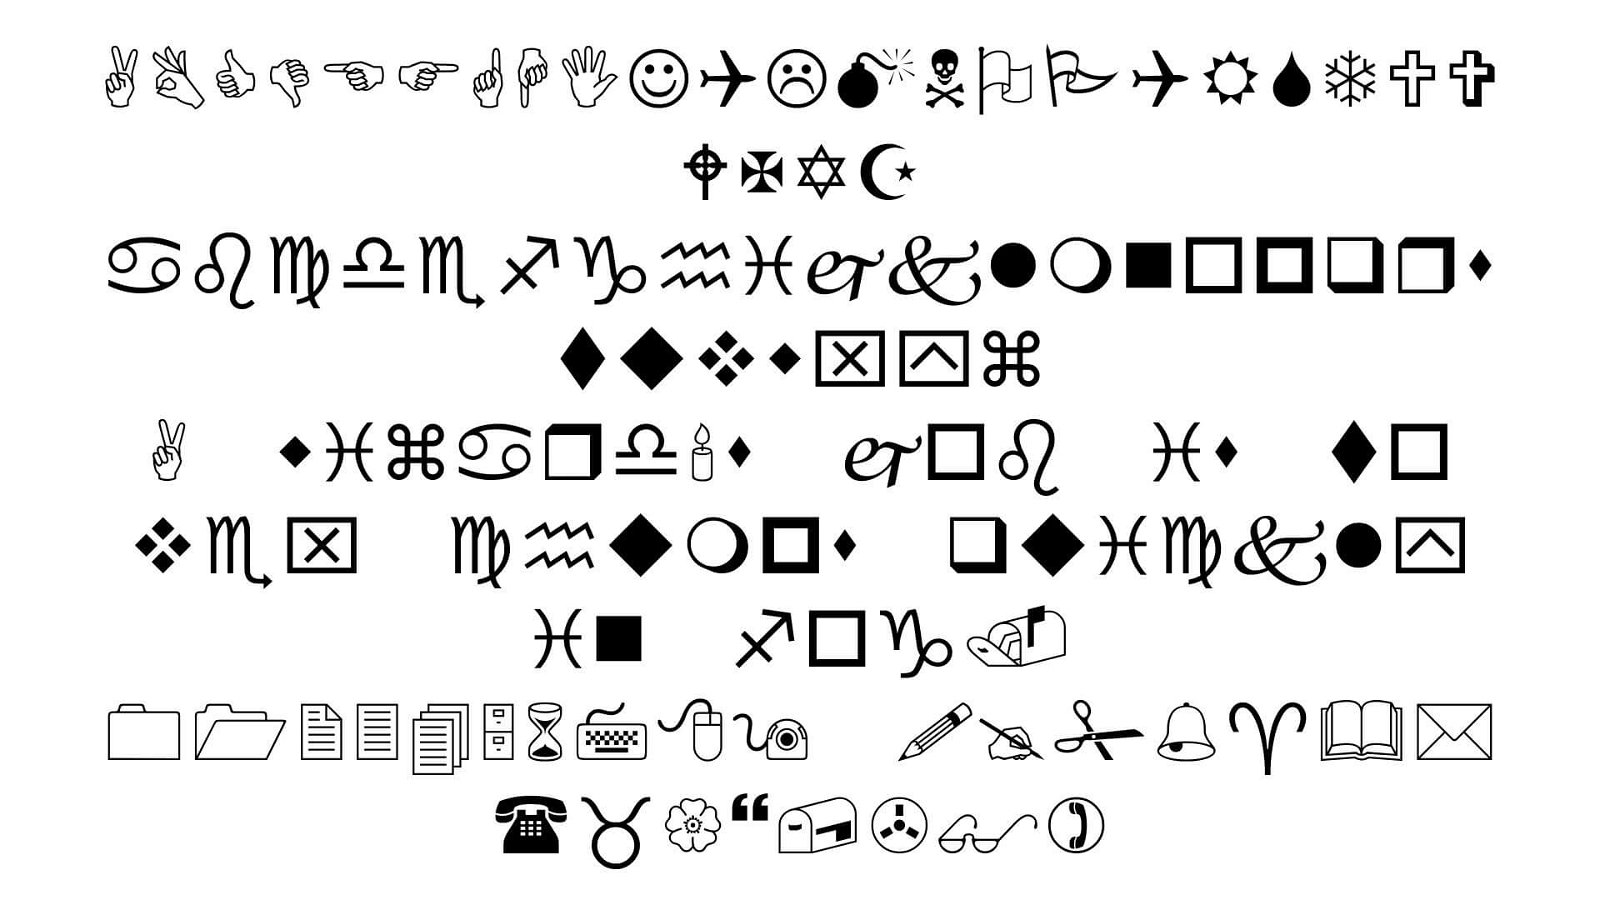 Wingdings Font View - Wingdings Font Free Download